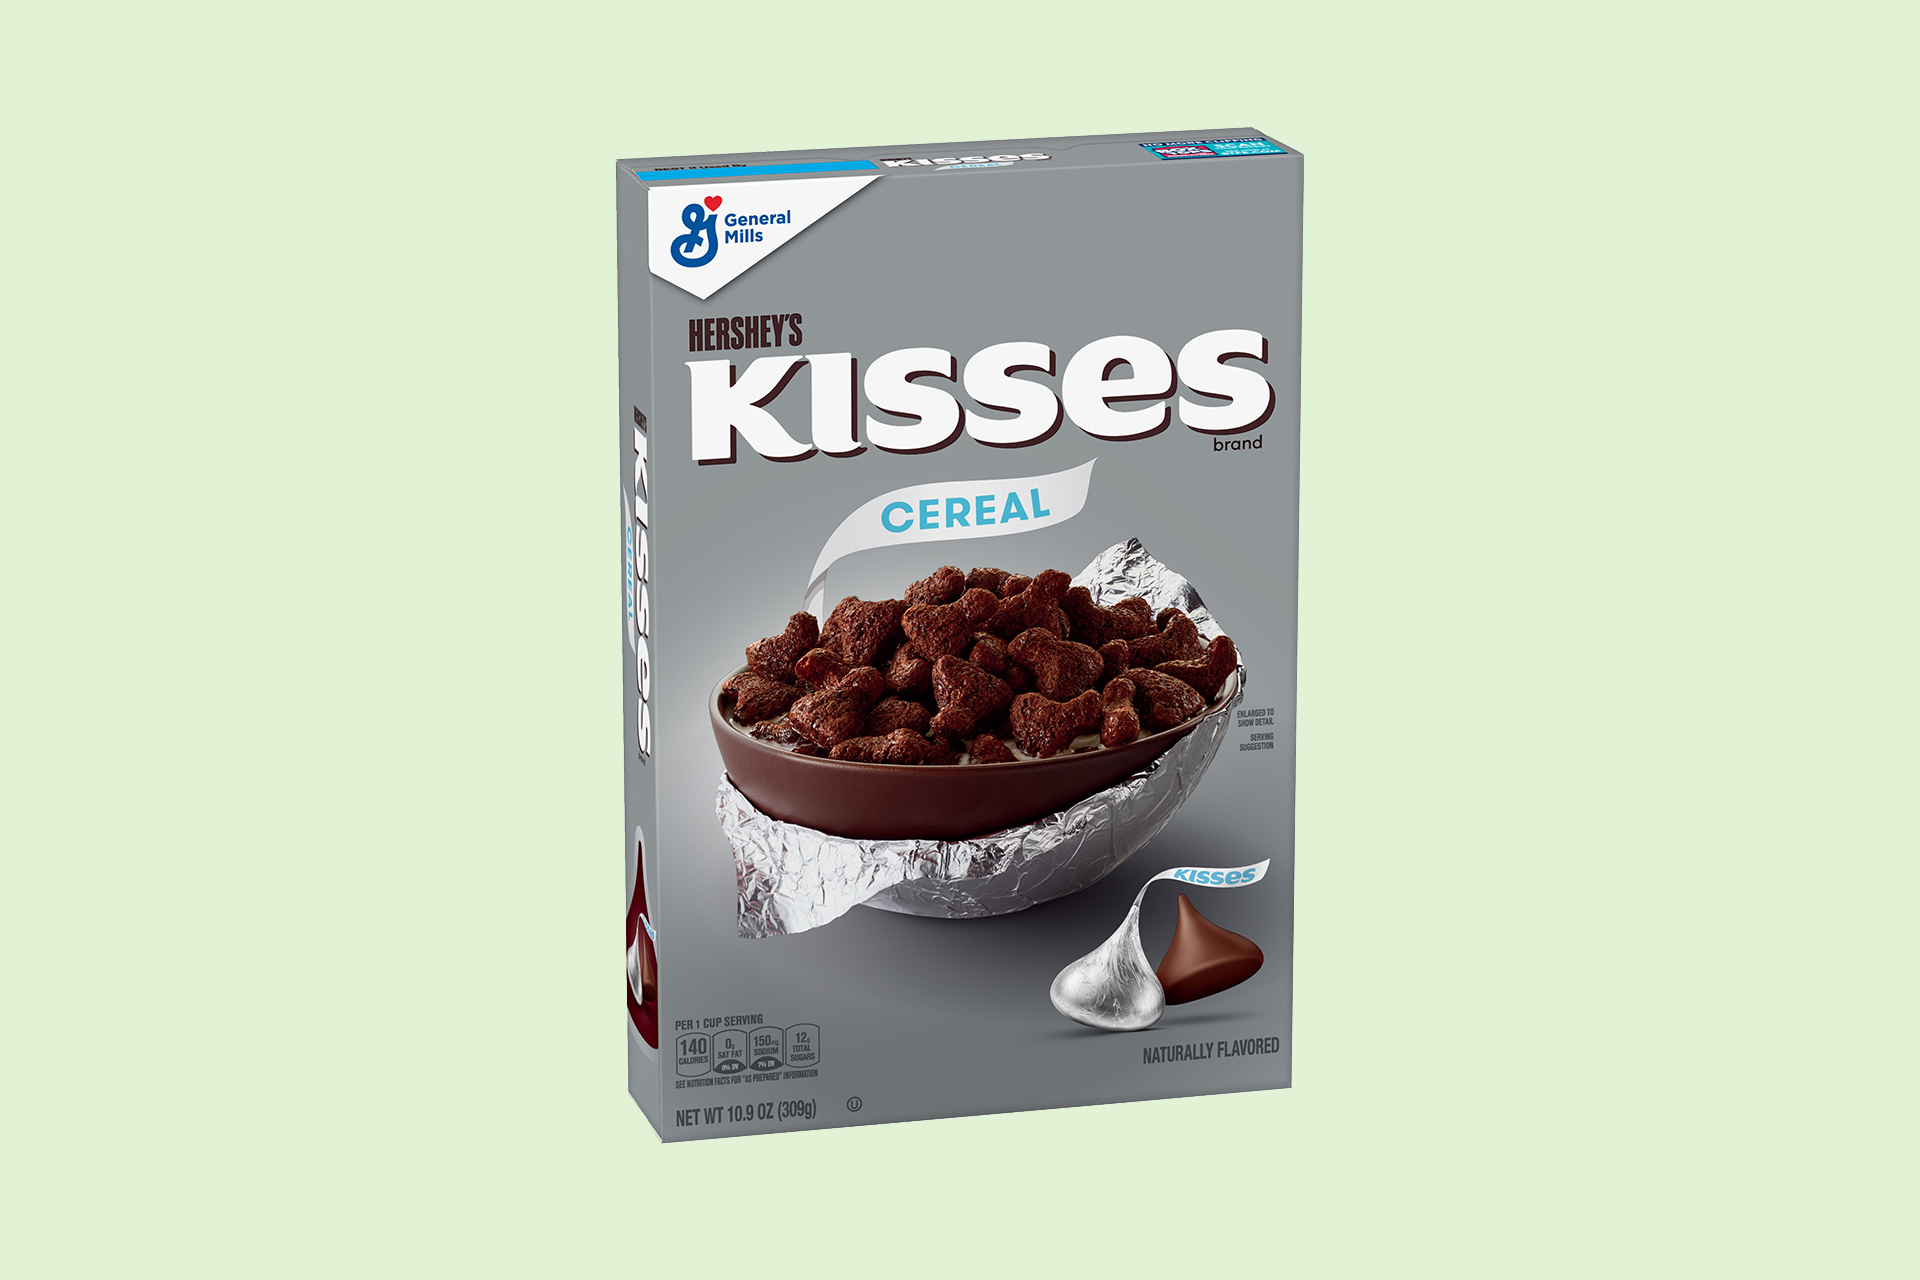 You Can Now Buy Hershey's Kisses in Cereal Form